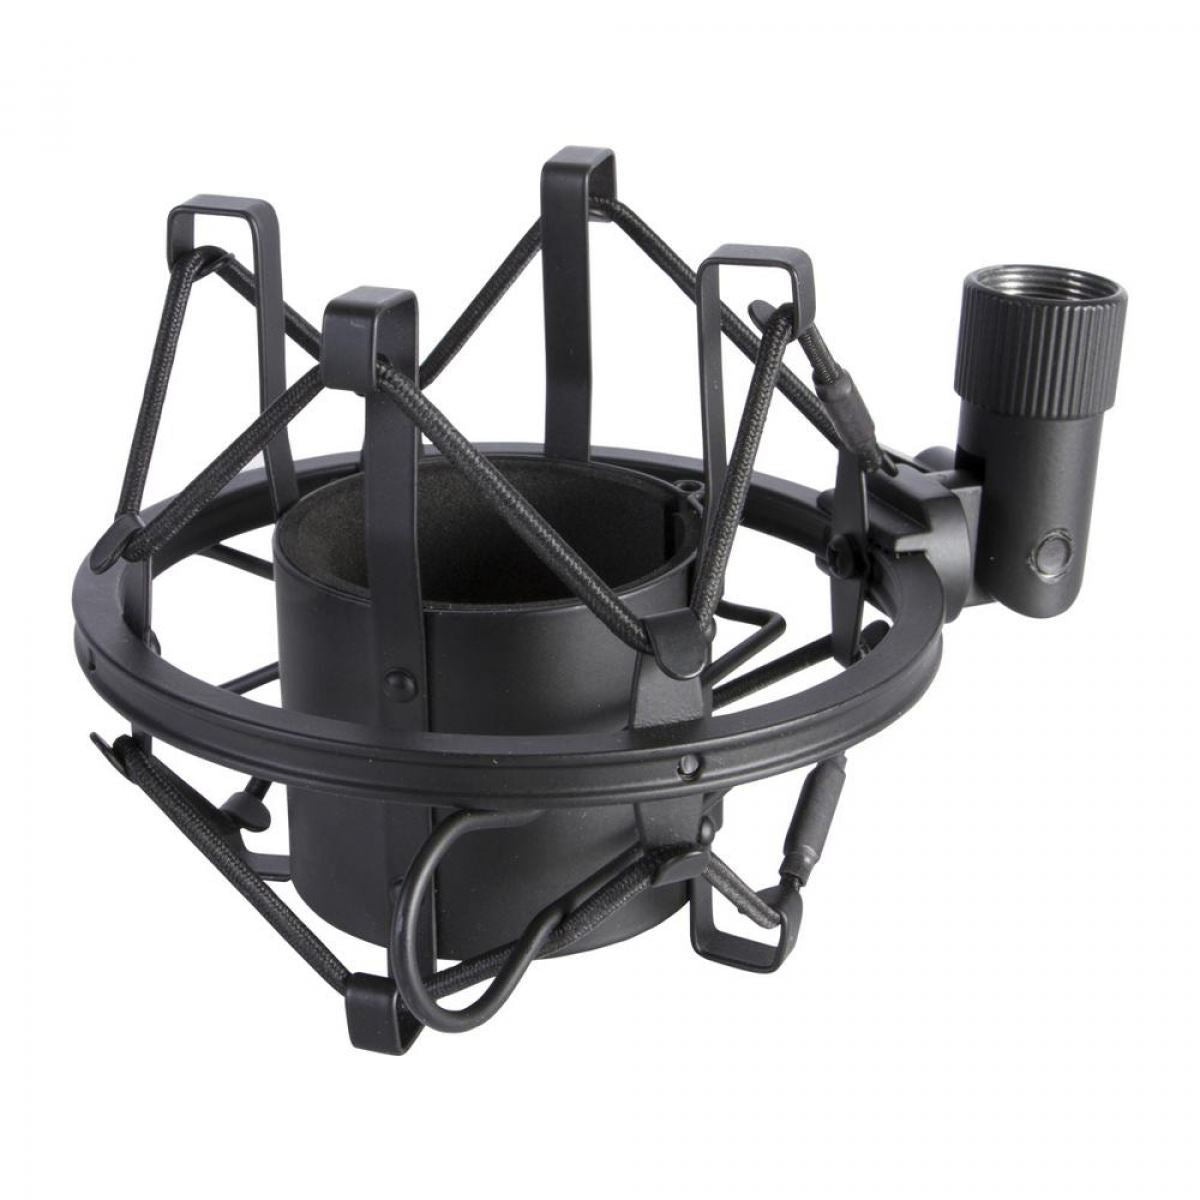 Black Shock Mount for Neumann TLM 102 Microphone